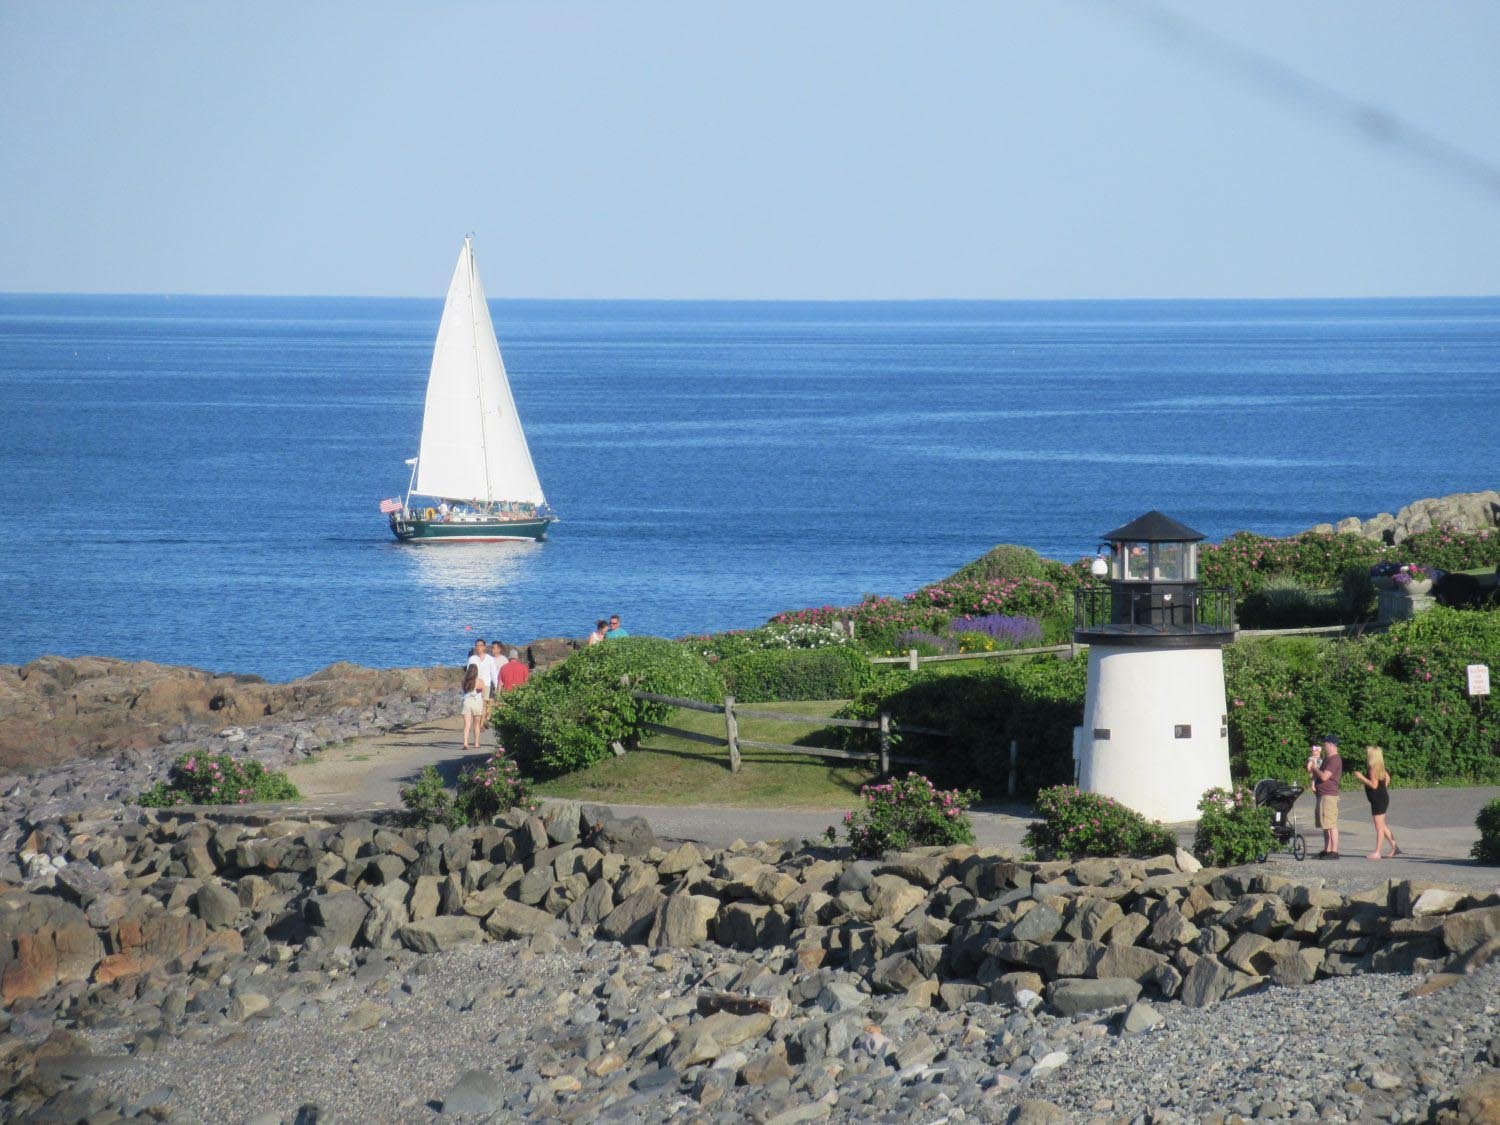 Lighthouse & The Gift Sailboat